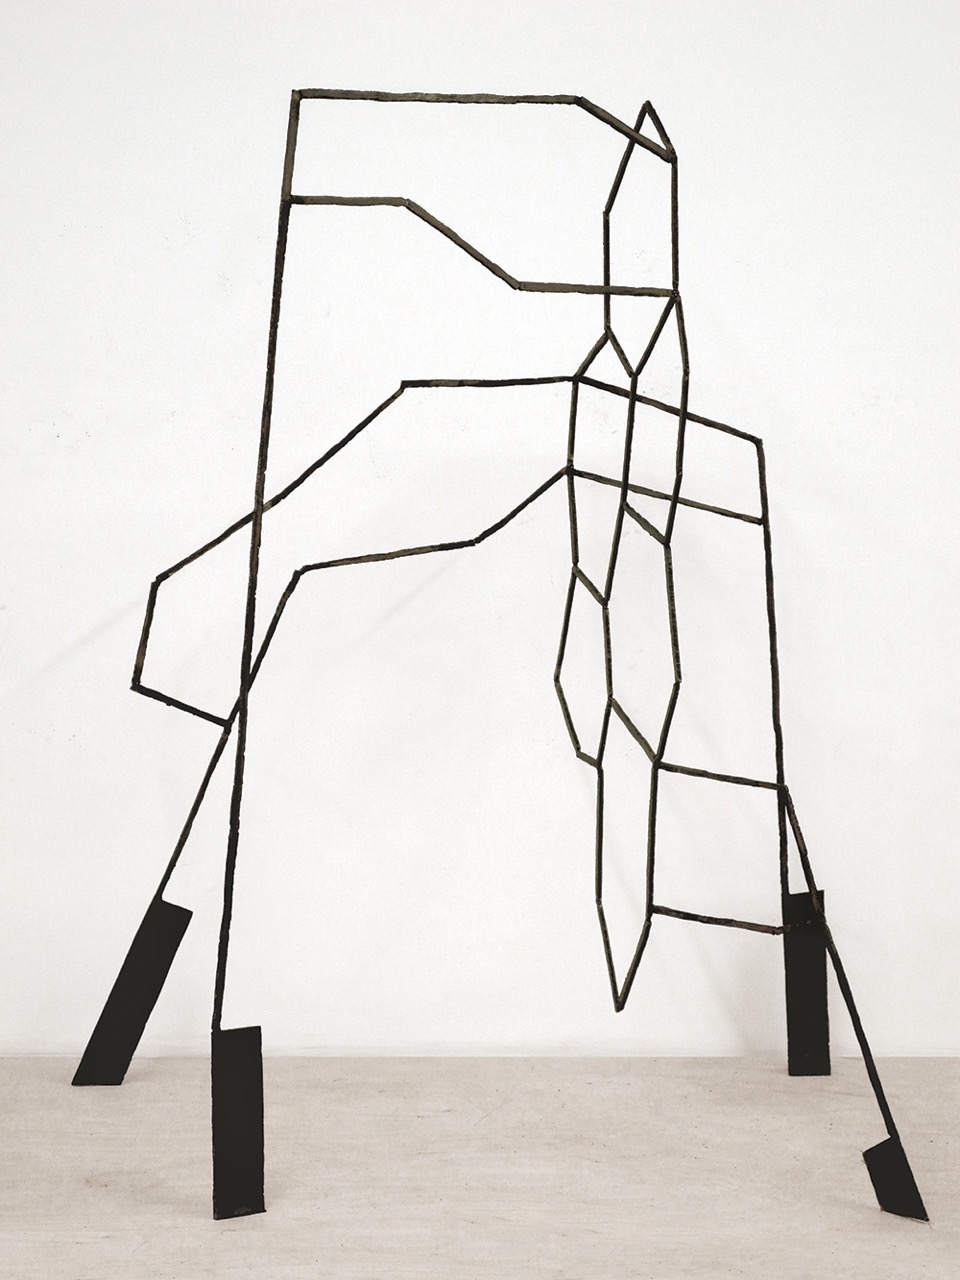 Right: Dominique Labauvie, Honeycomb, 2014, Forged steel, 53 x 43.5 x 32 in.